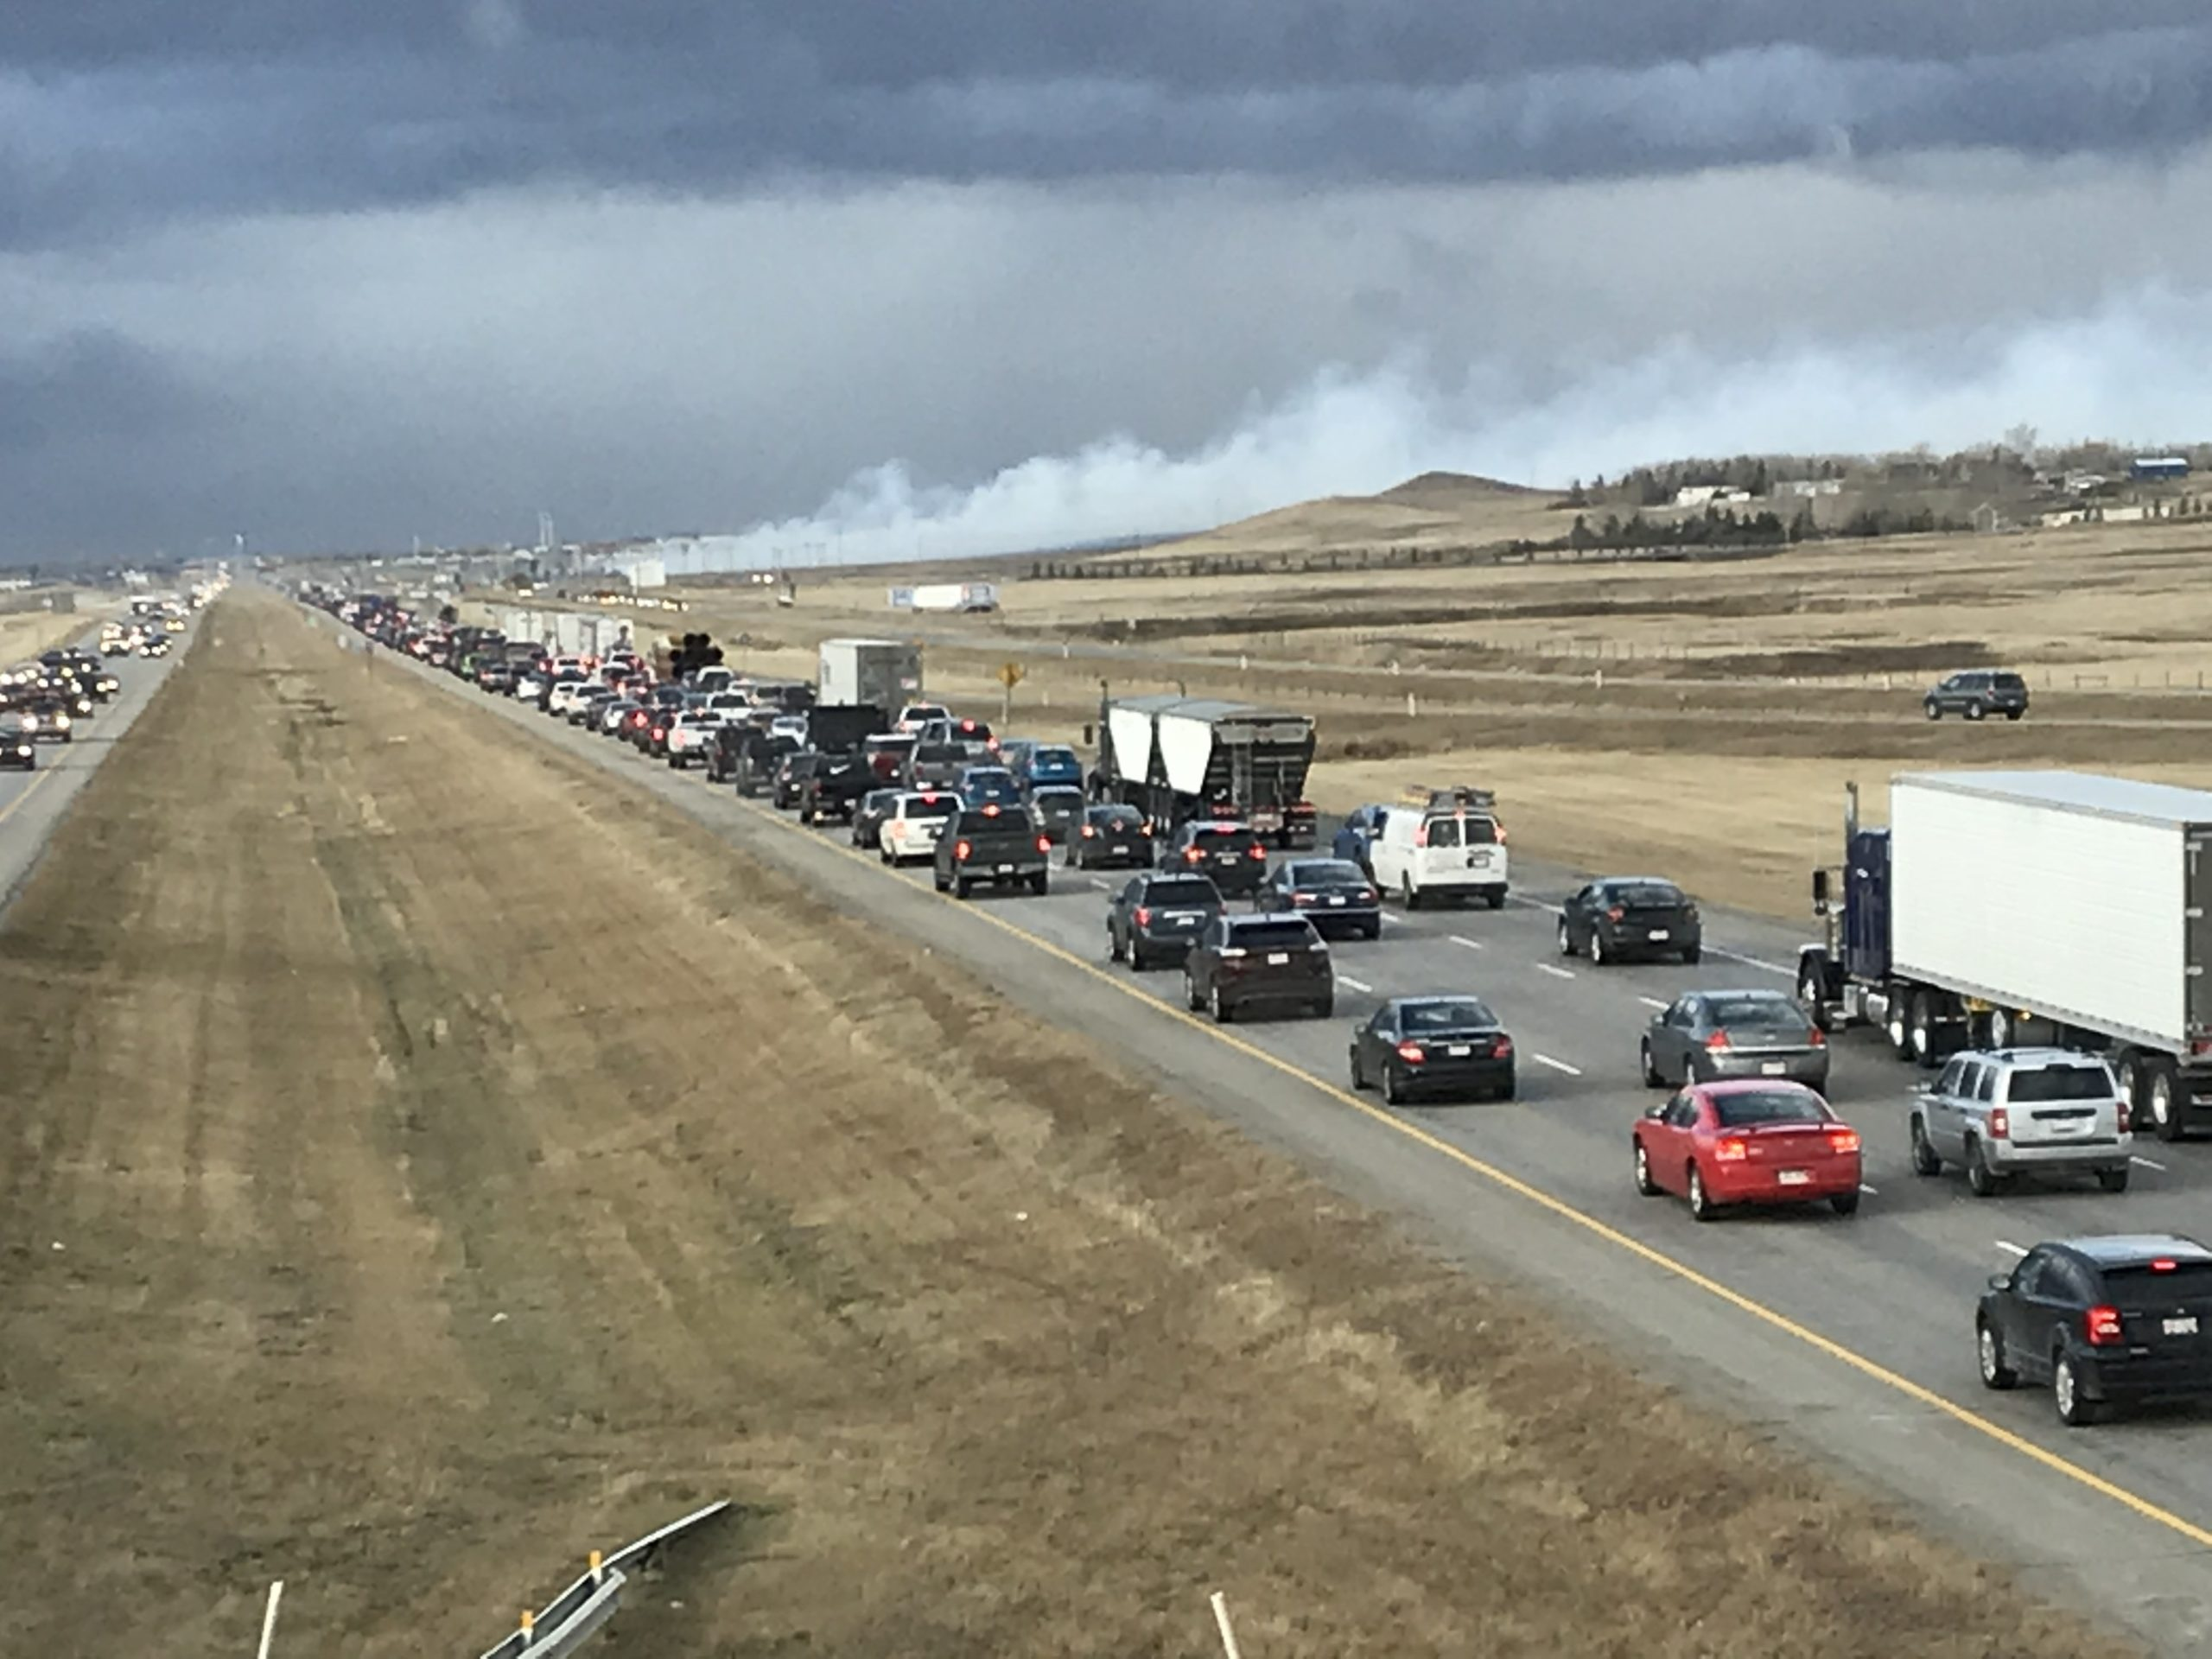 Fire near Airdrie forces evacuation